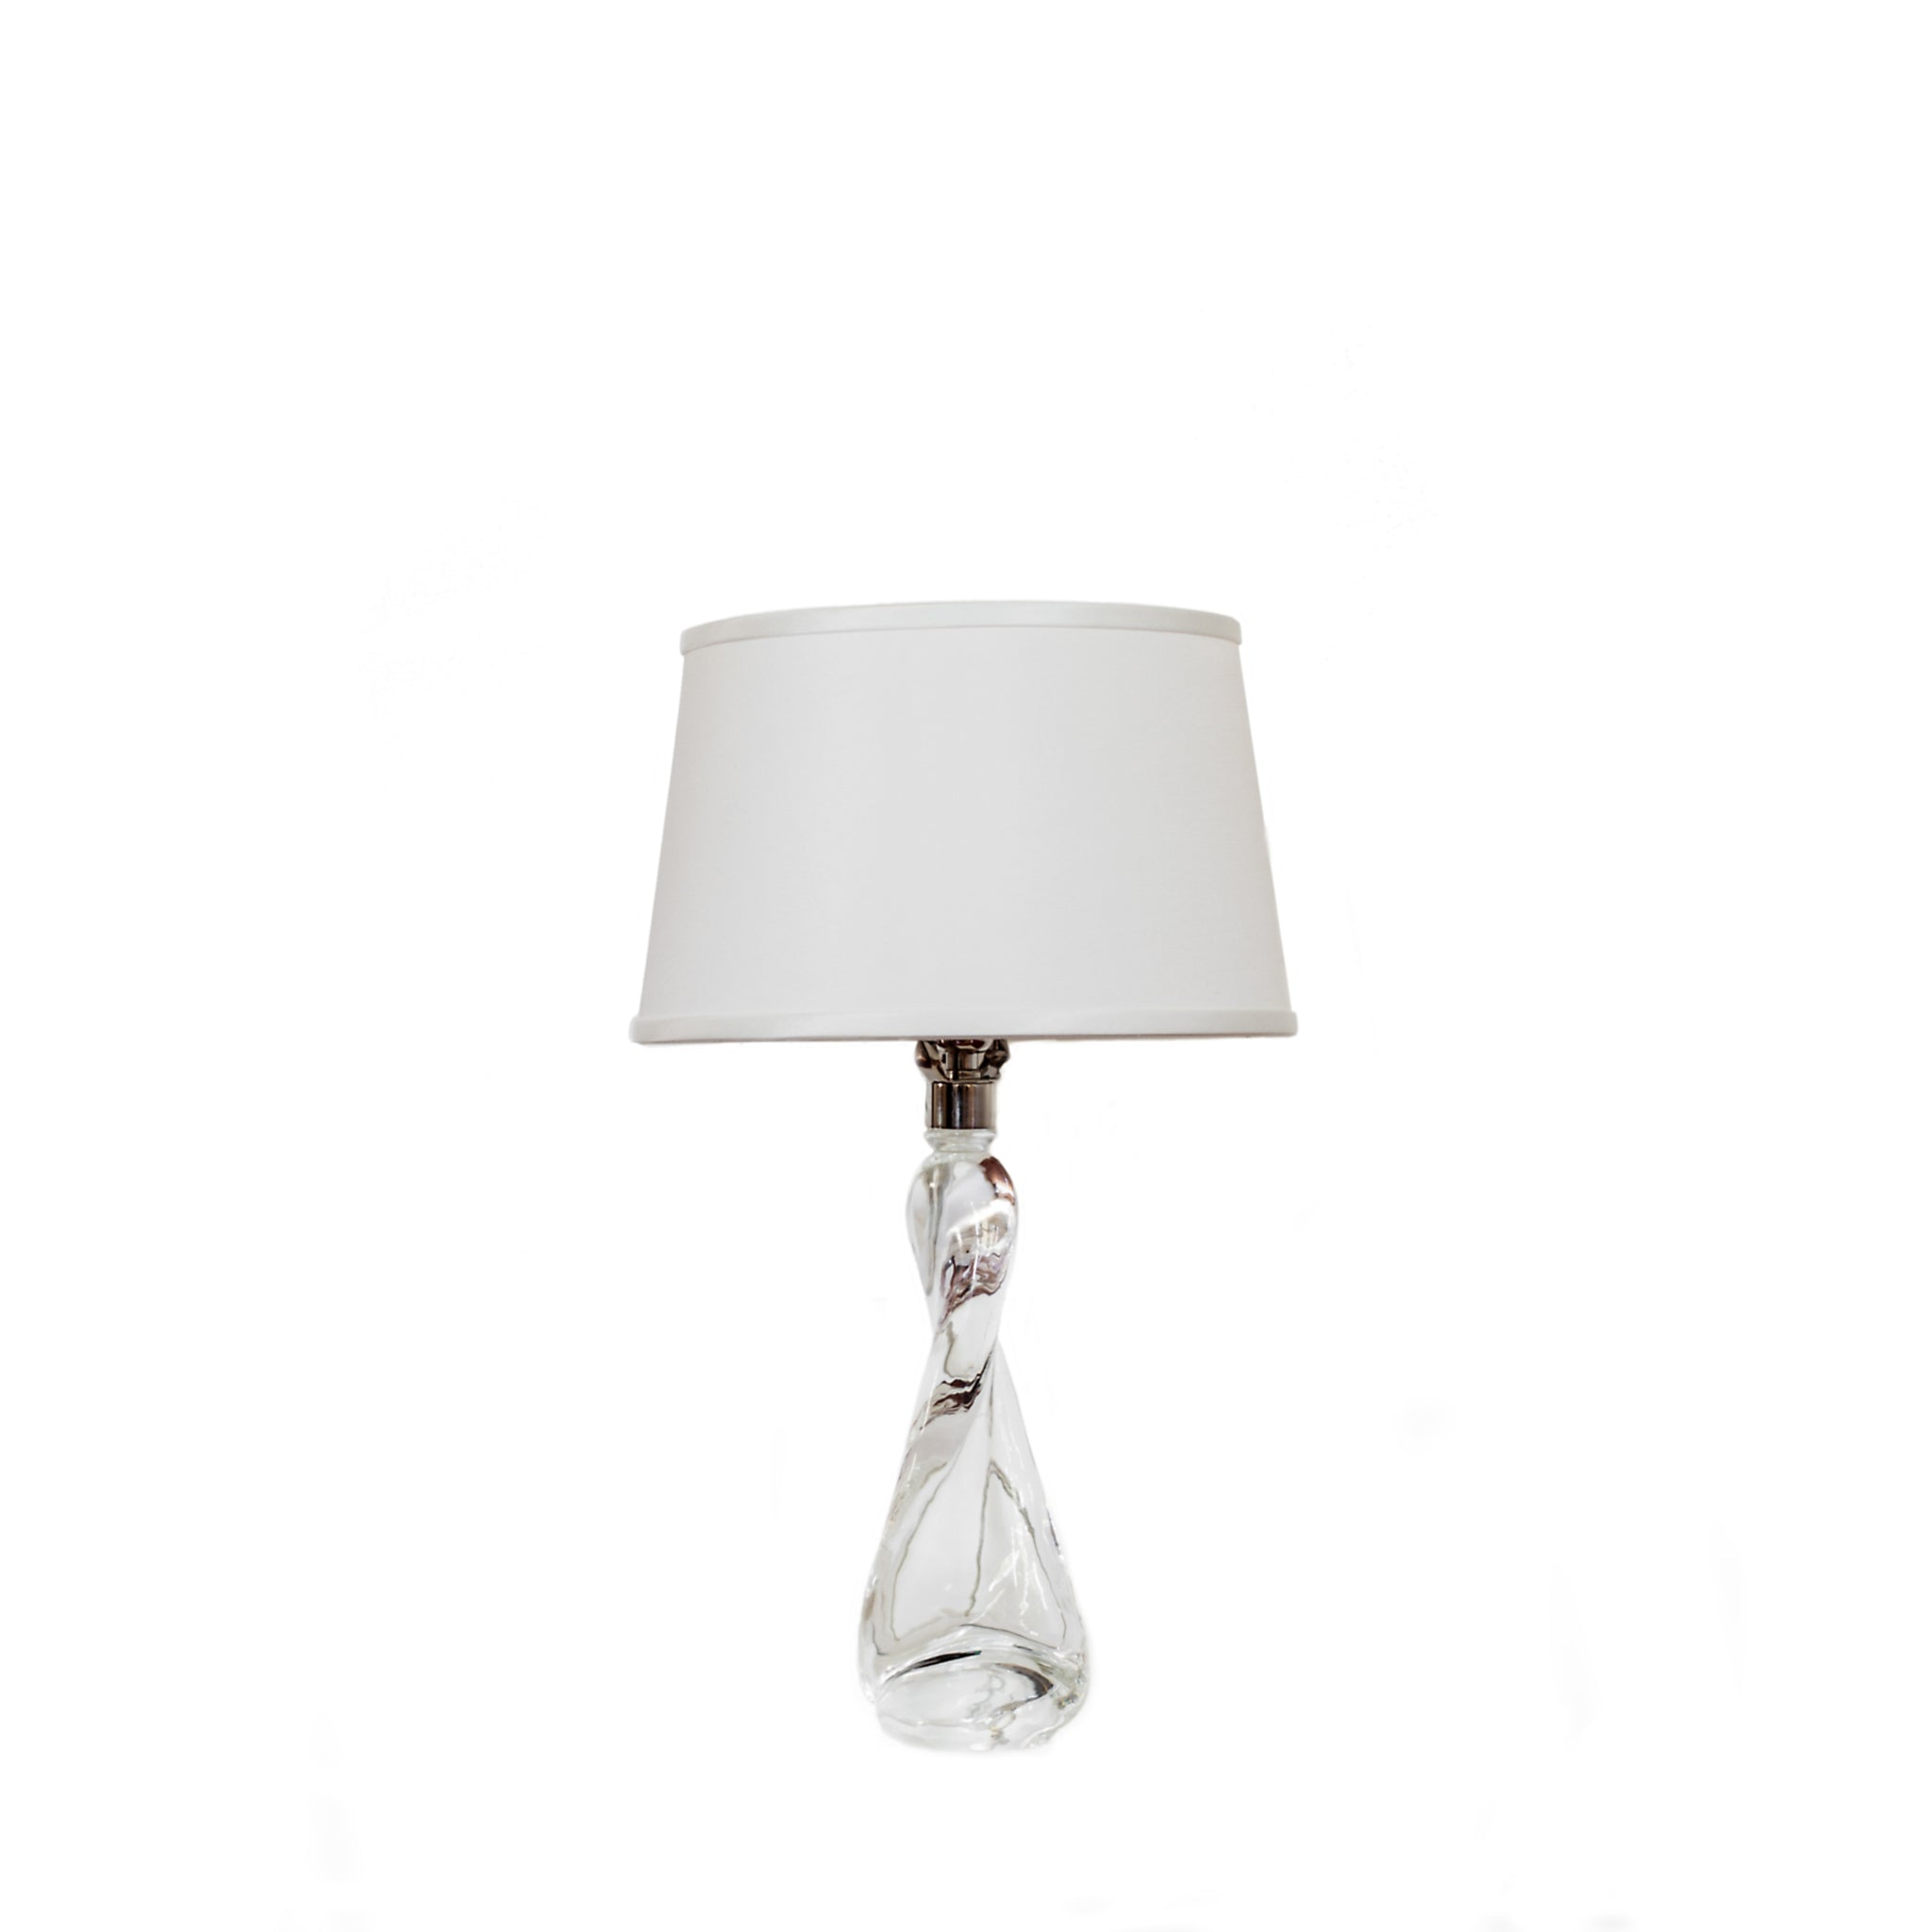 Chloe Table Lamp in clear glass with silk shade